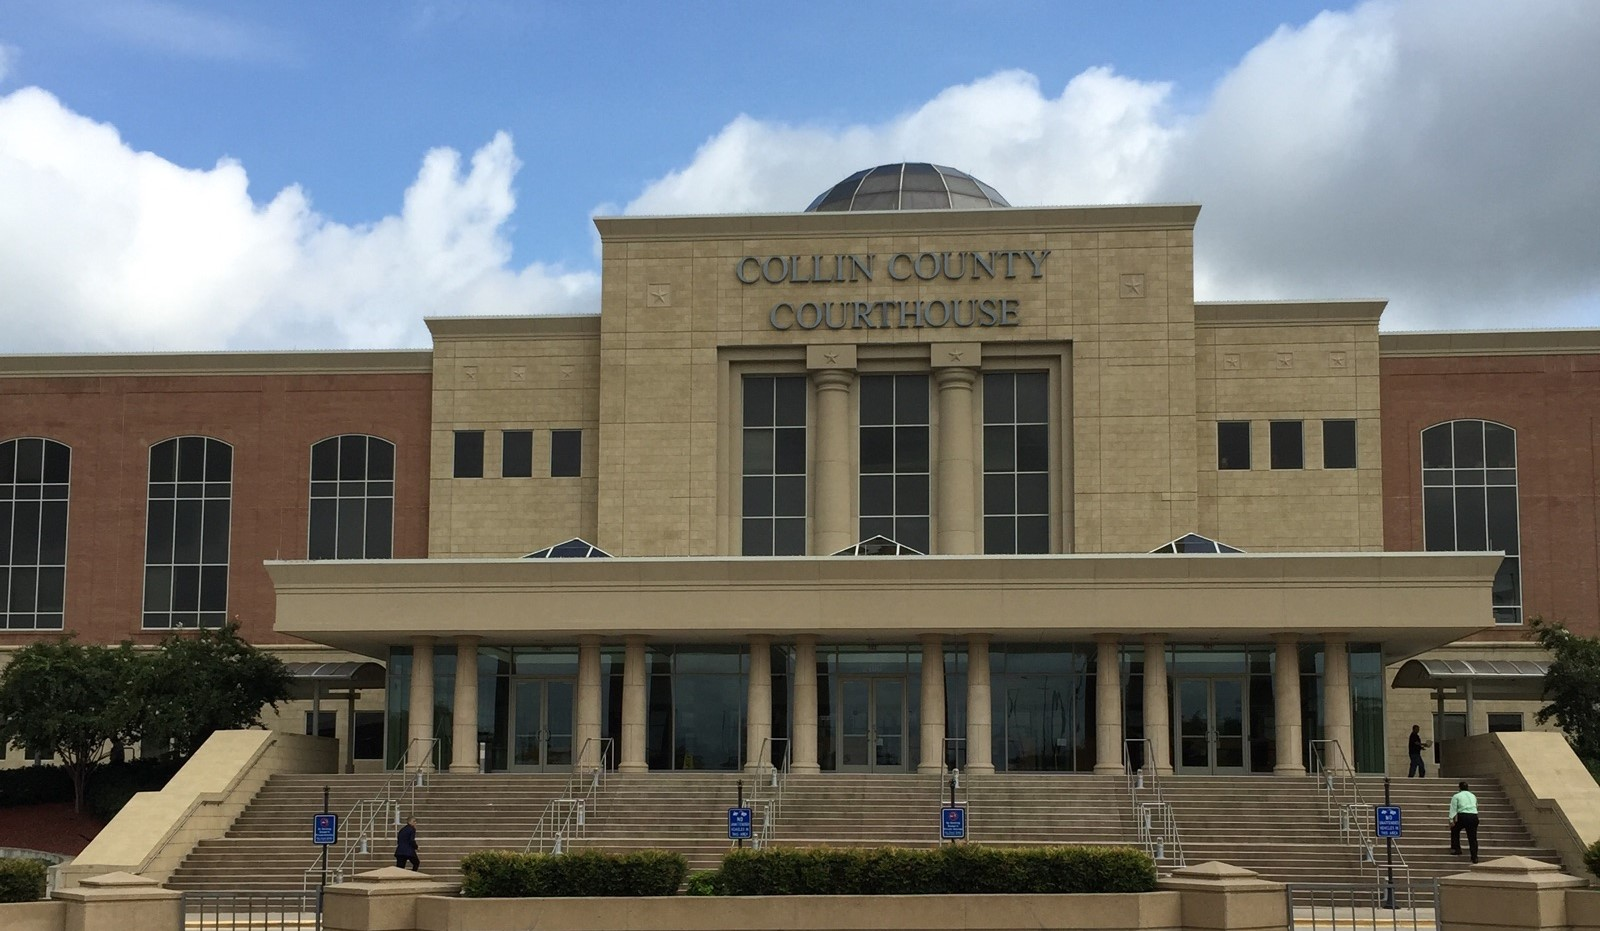 Picture of Collin County Courthouse